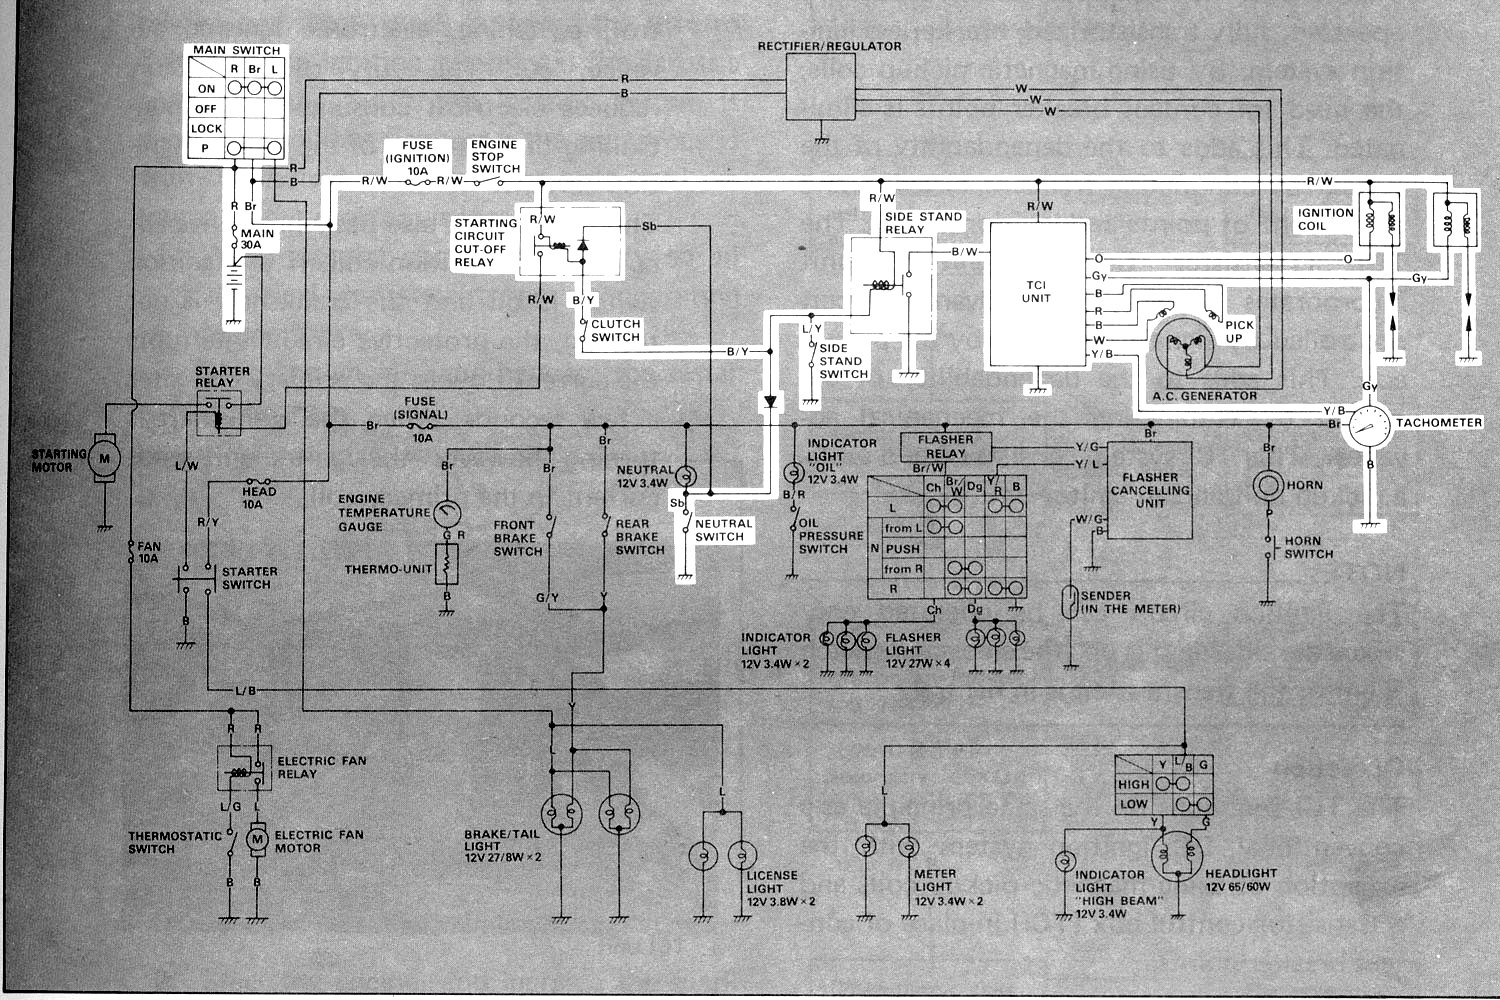 Yamaha Venture Wiring Diagram And Schematics Toyota 83 Basic Guide U2022 Rh Needpixies Com 1989